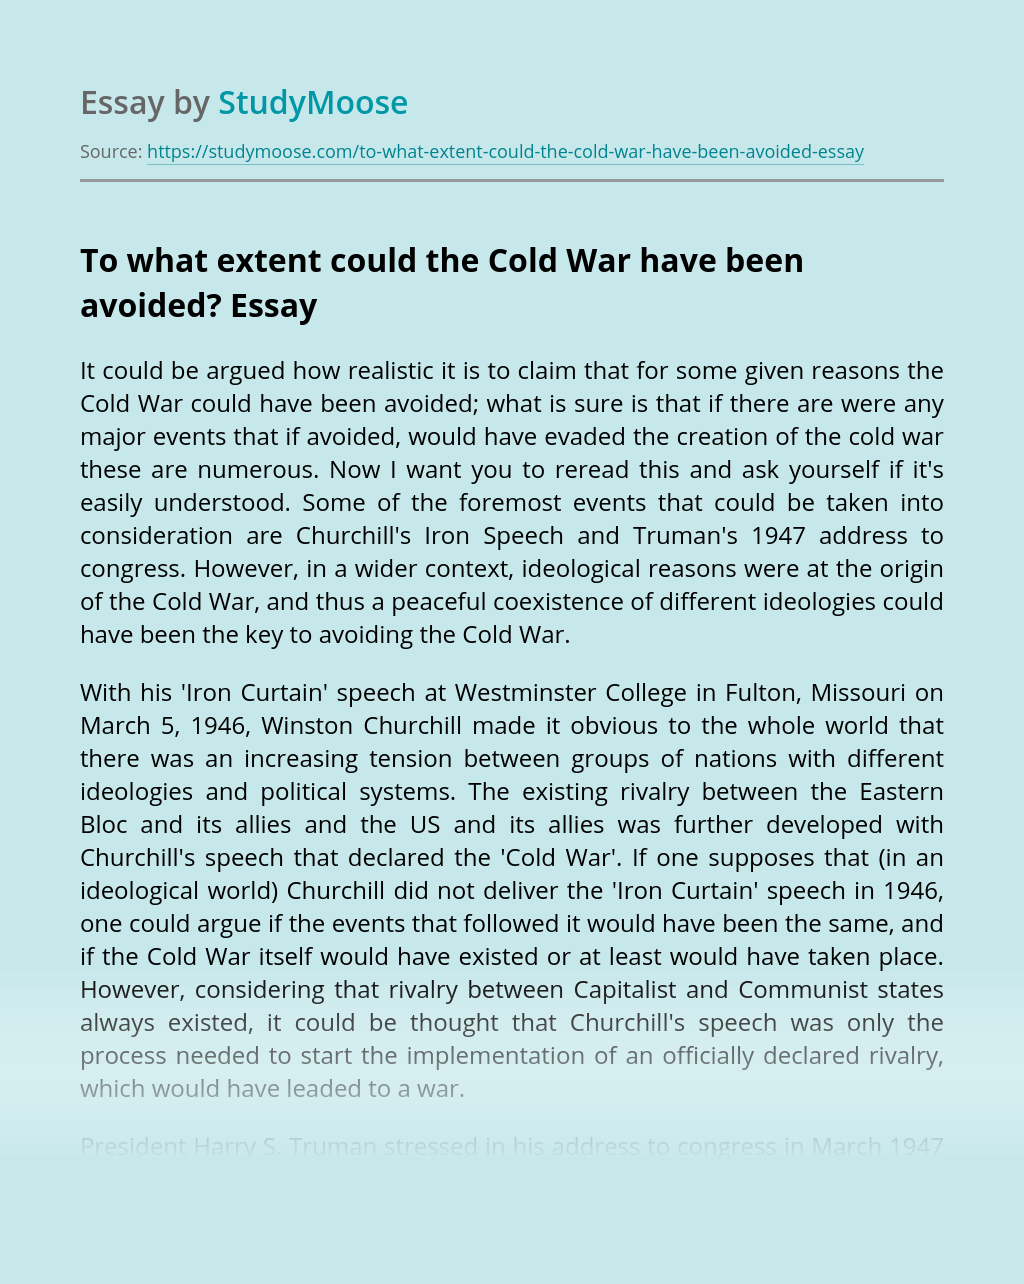 To what extent could the Cold War have been avoided?